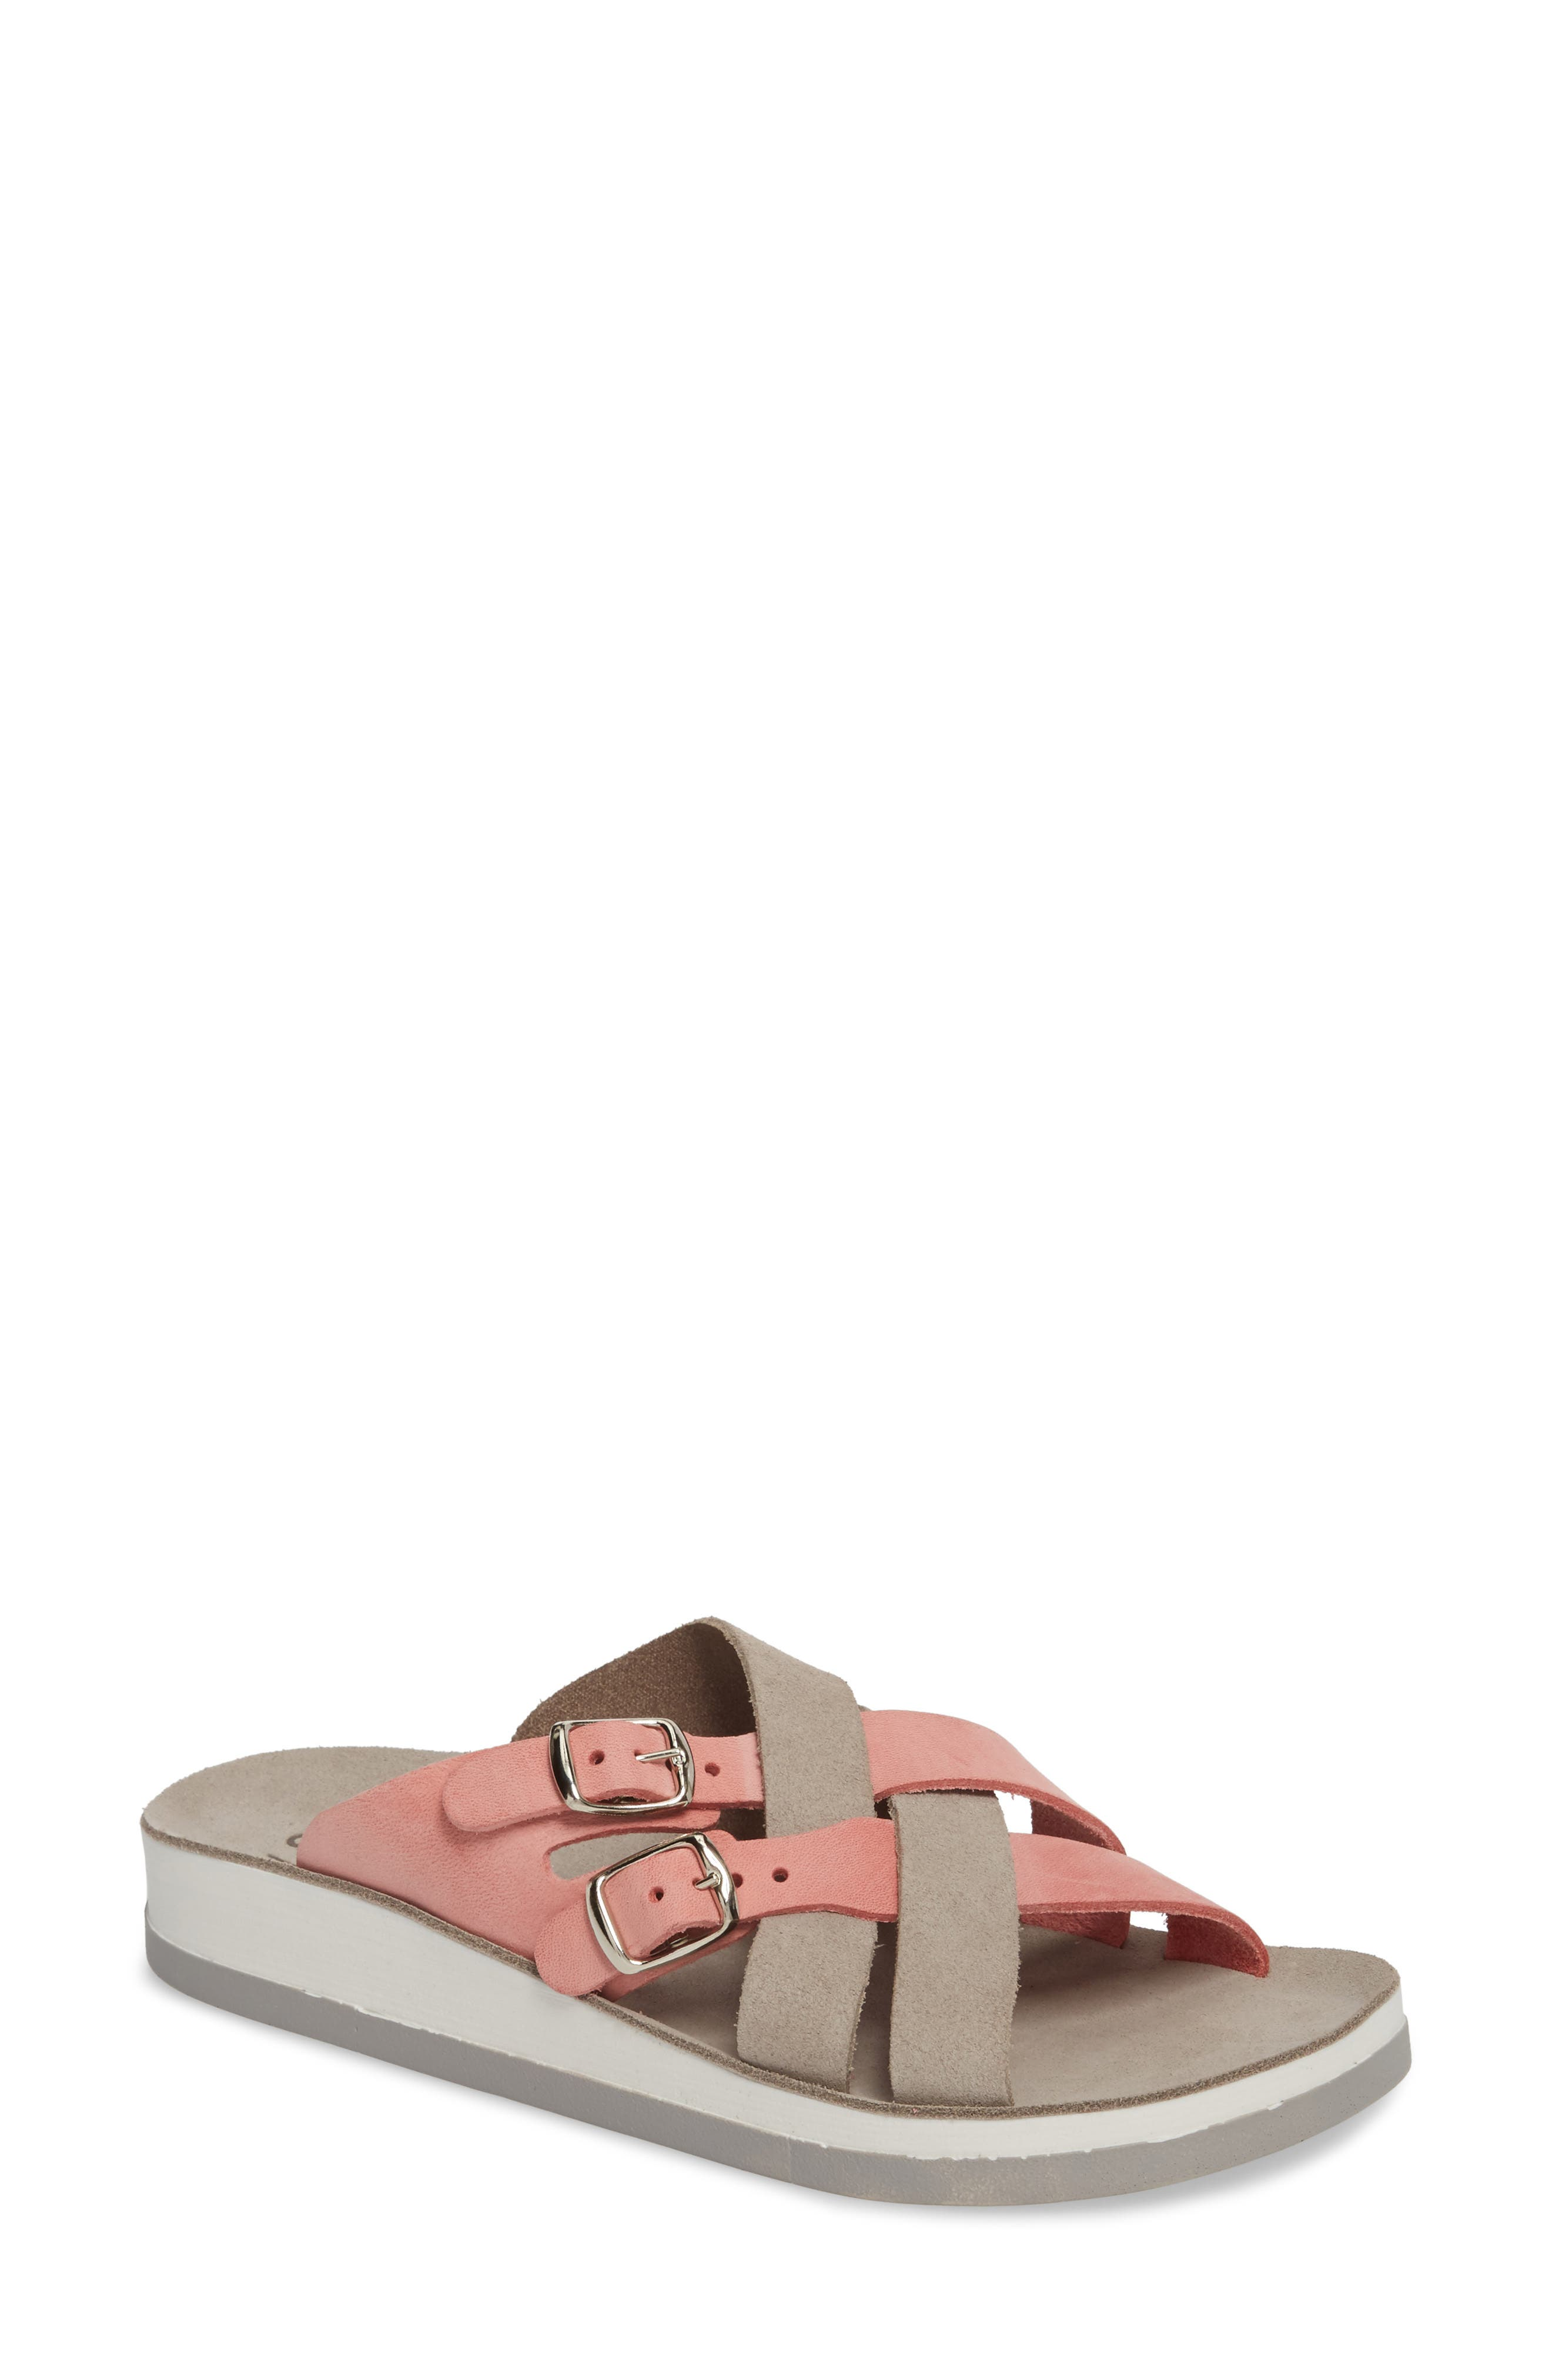 Main Image - Fantasy Sandals Silvia Slide Sandal (Women)